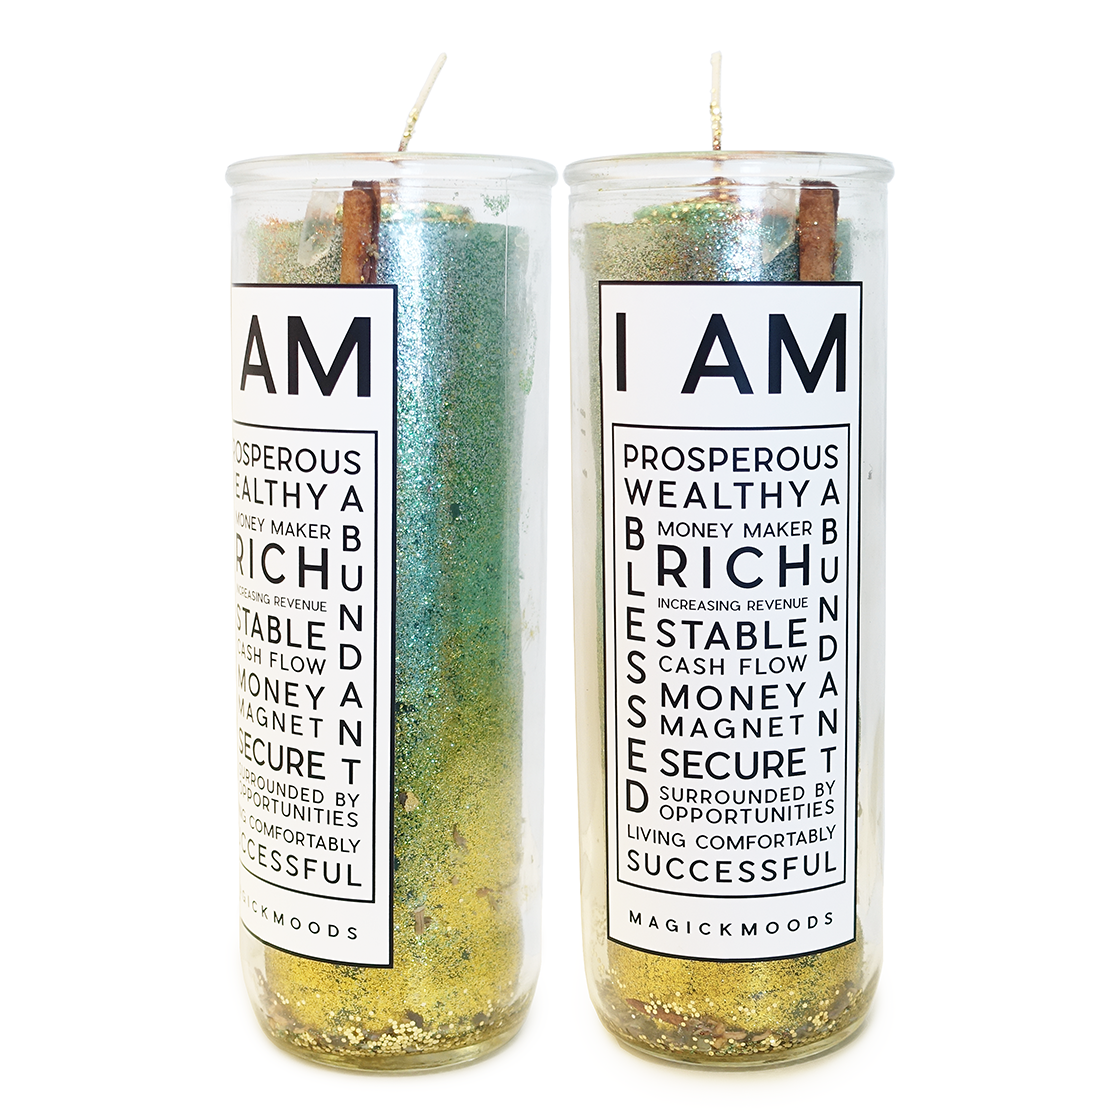 I Am Prosperous 7-Day Meditation Candle - PREORDER - Ships by 8/14